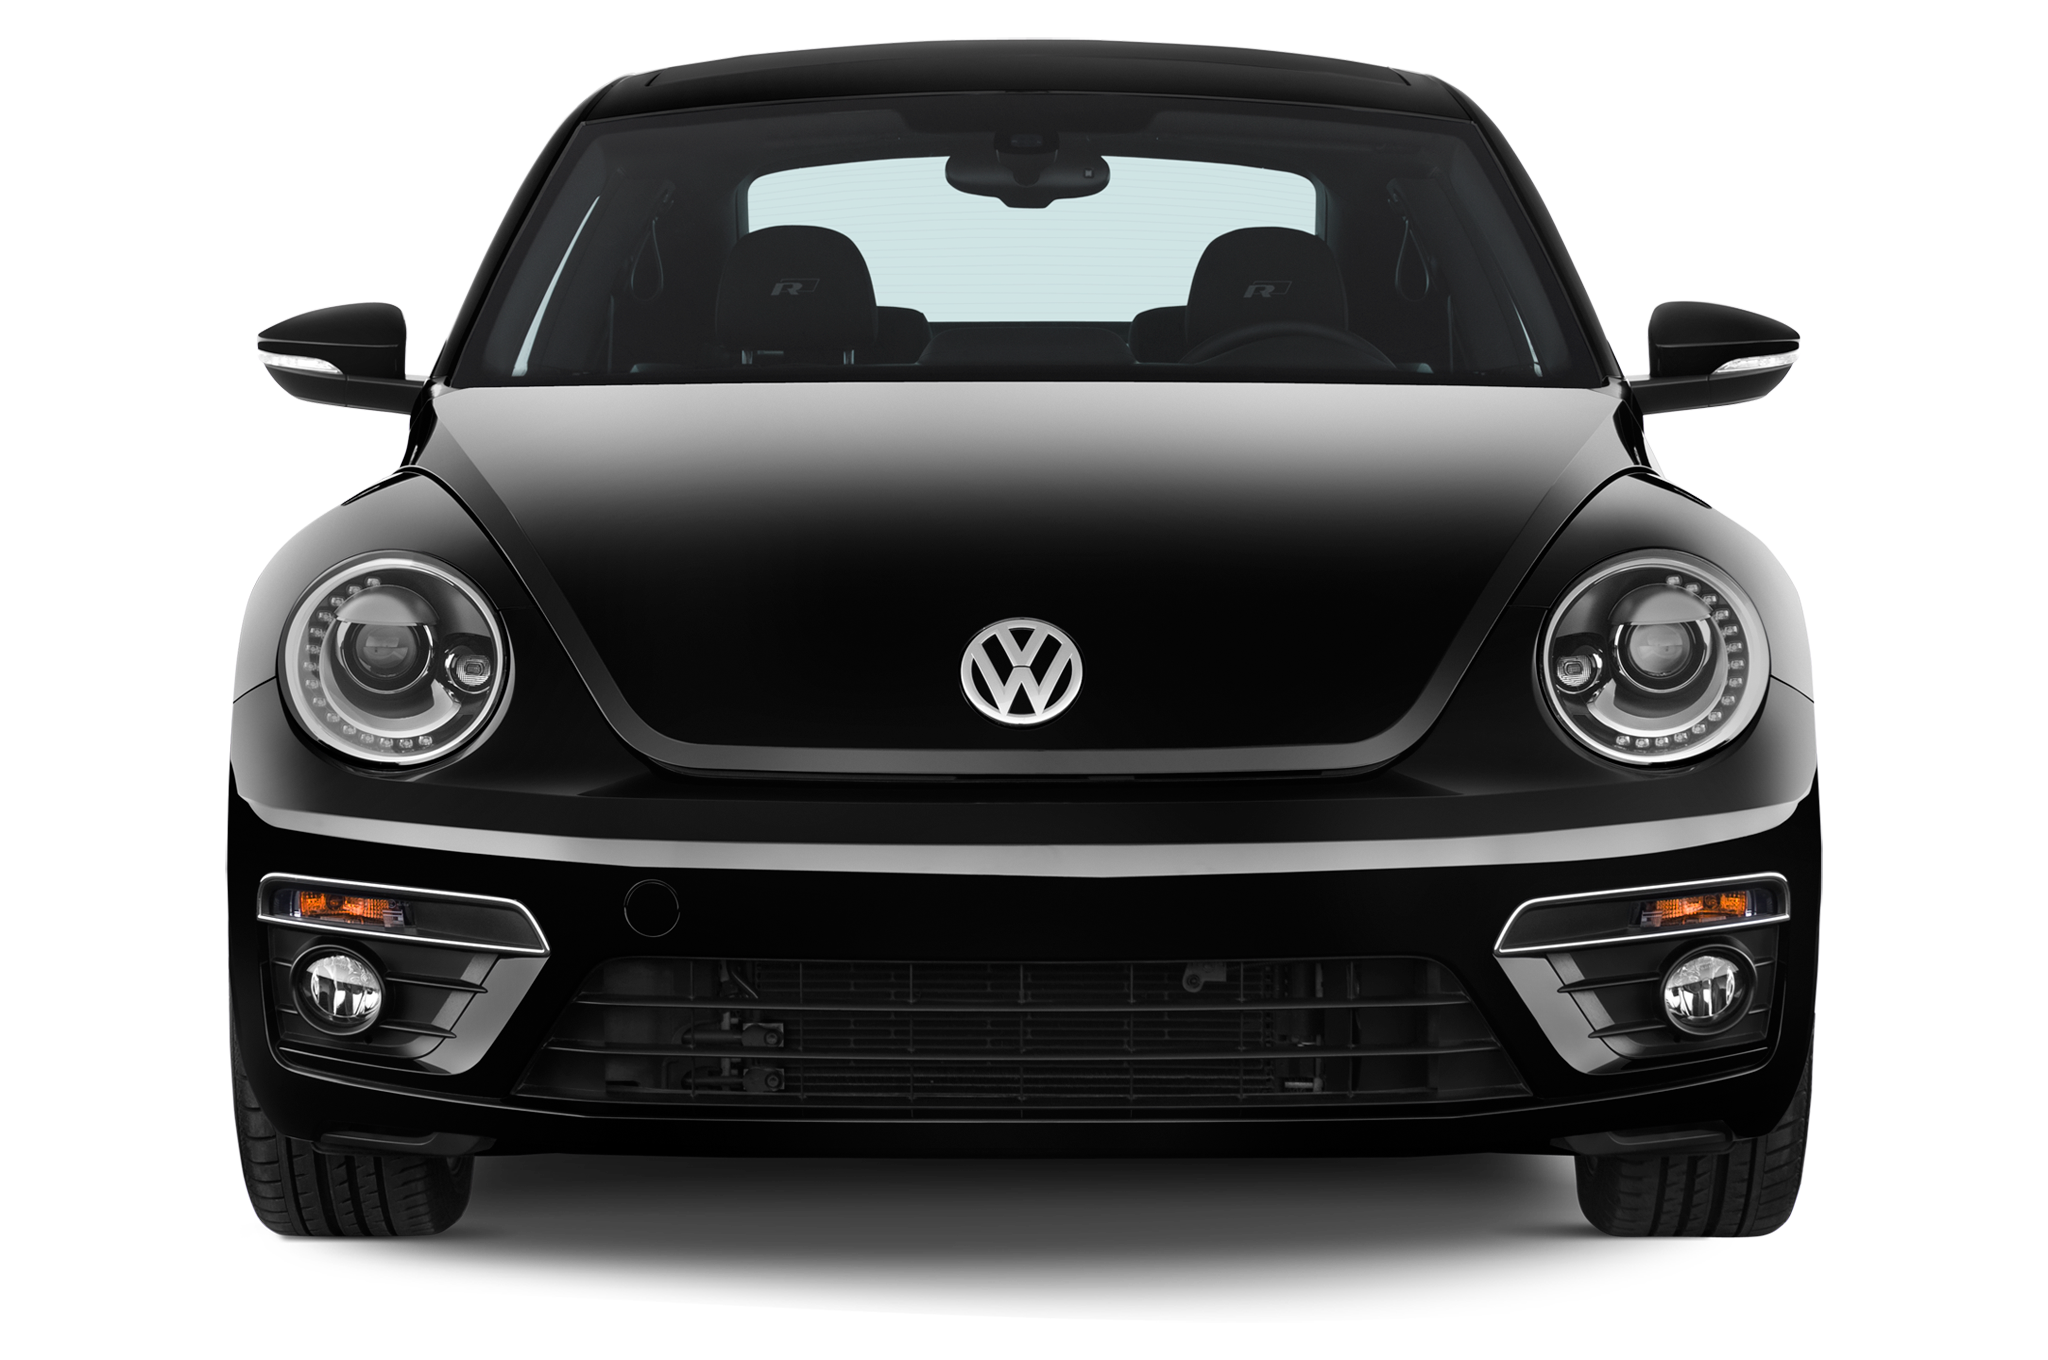 volkswagen reveals four new beetle concepts at 2015 new york auto show. Black Bedroom Furniture Sets. Home Design Ideas